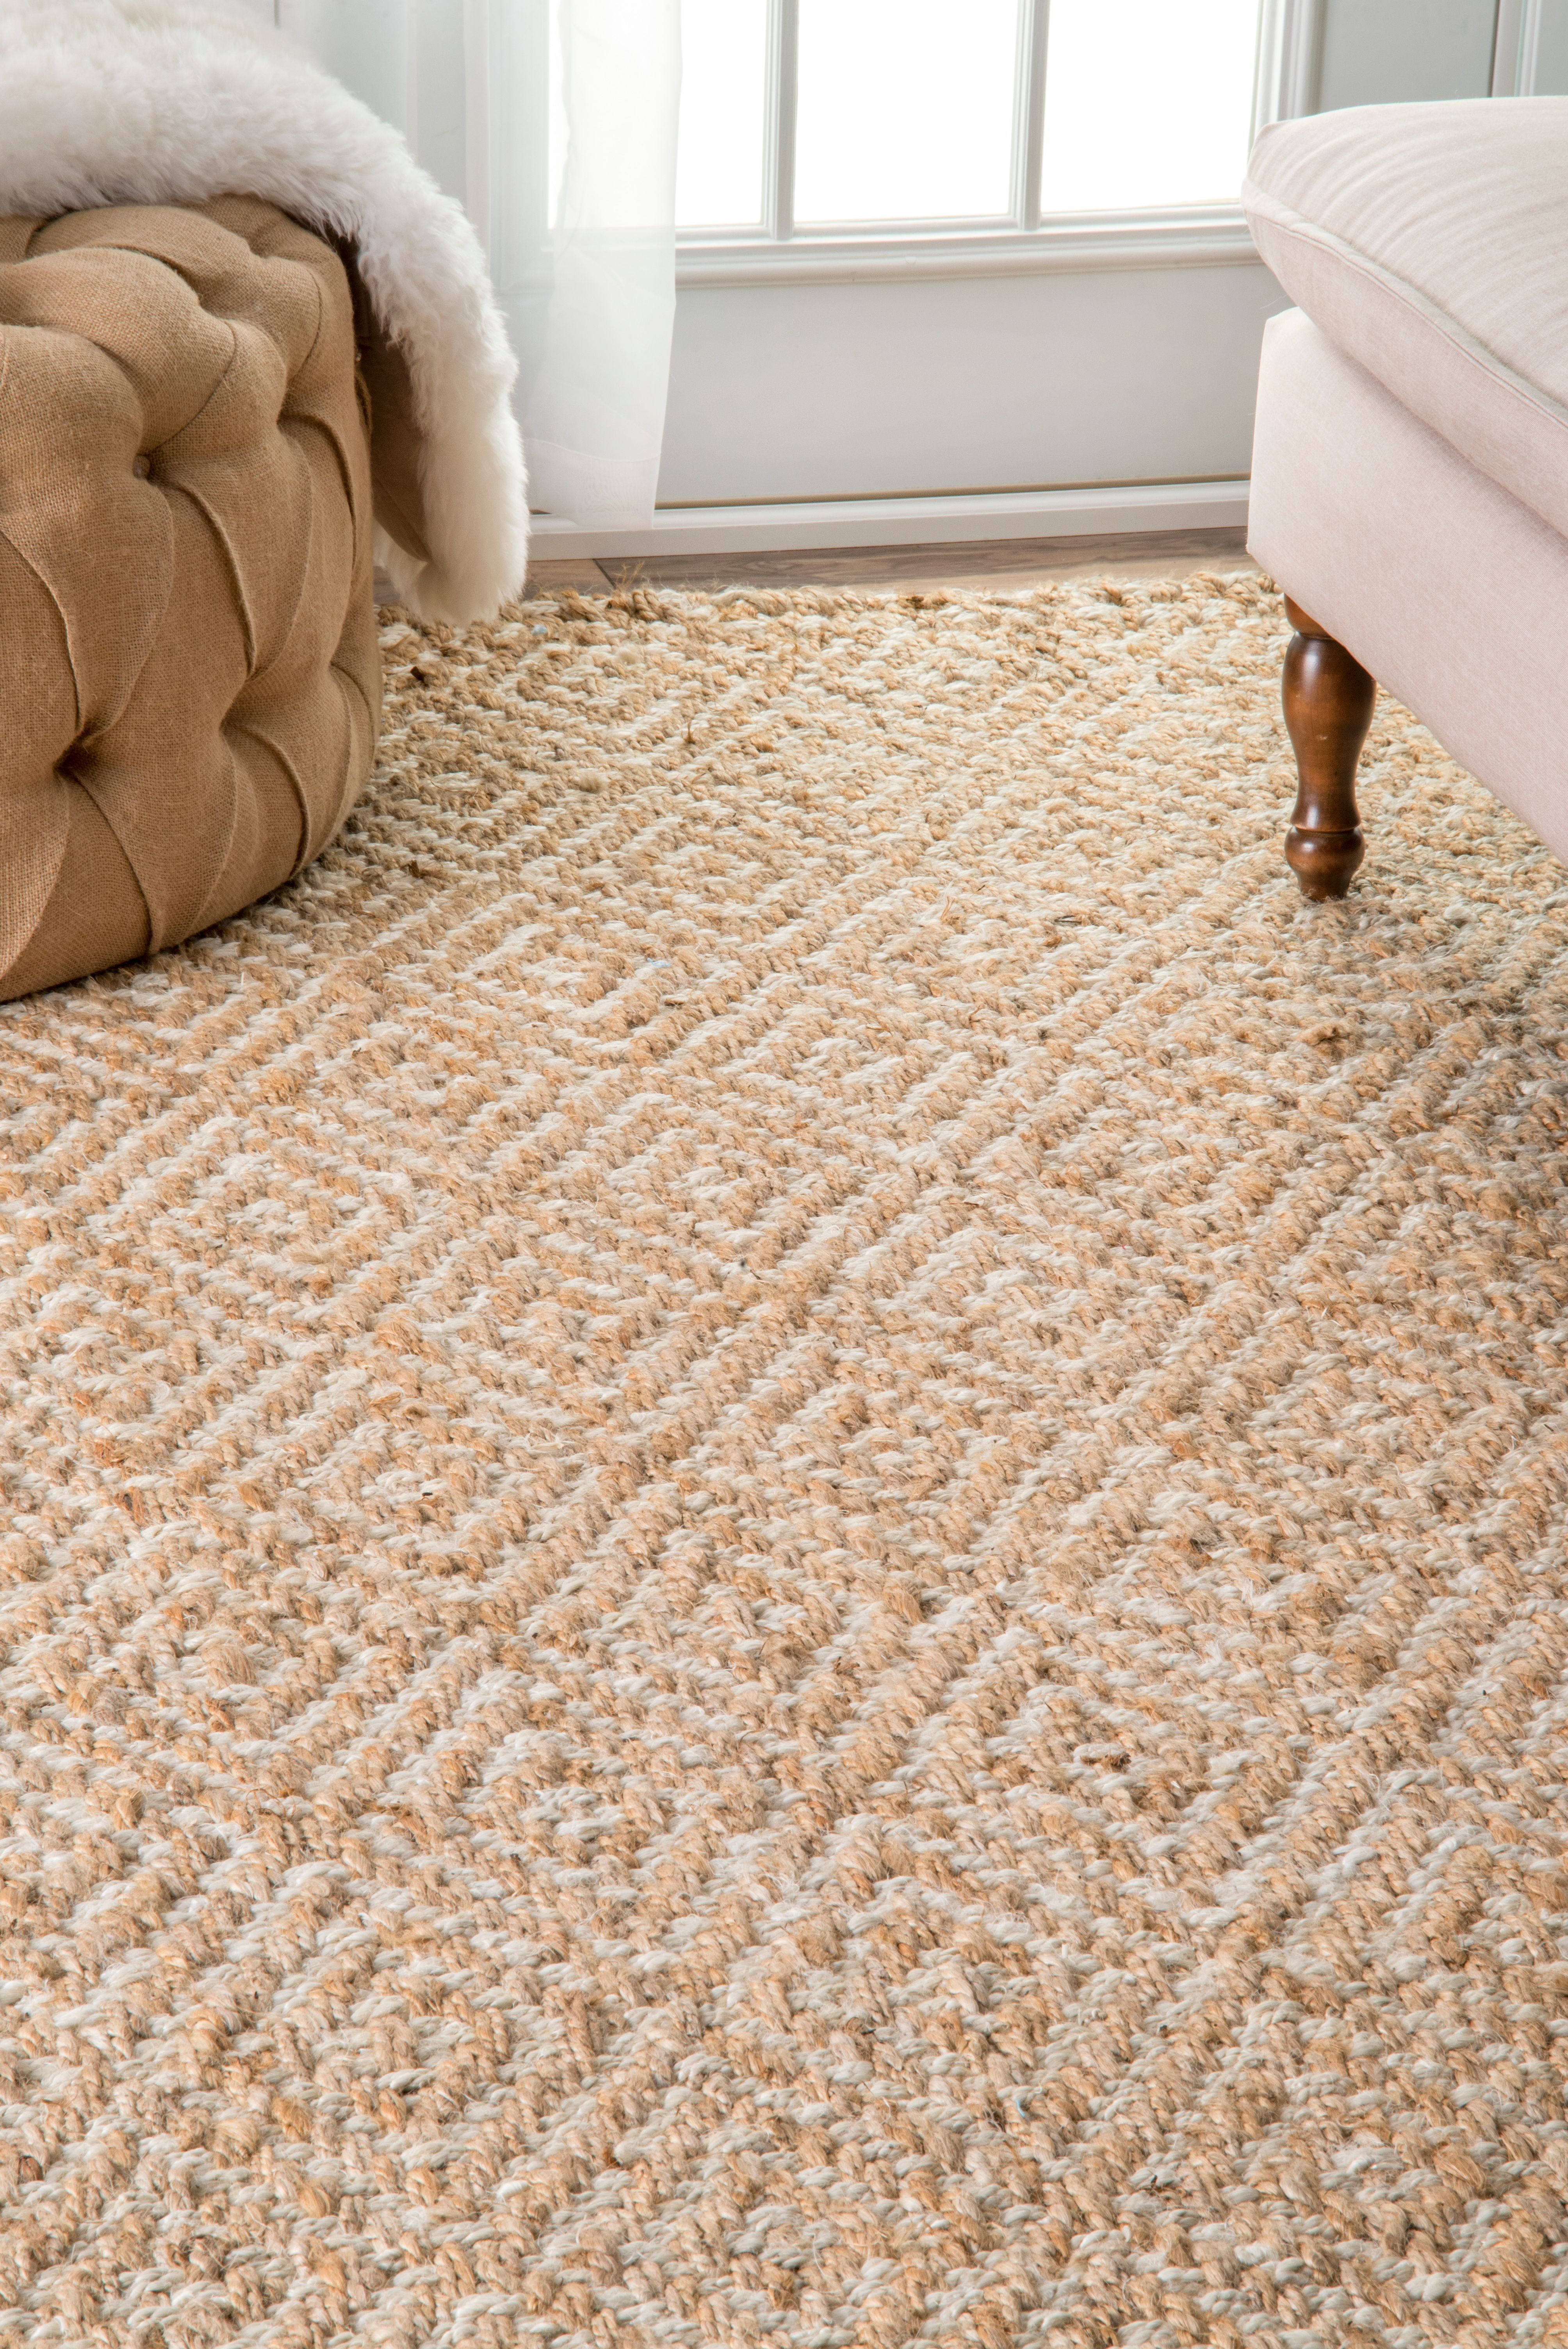 Earthy Organic And Handwoven This Natural Fiber Rug Will Bring A